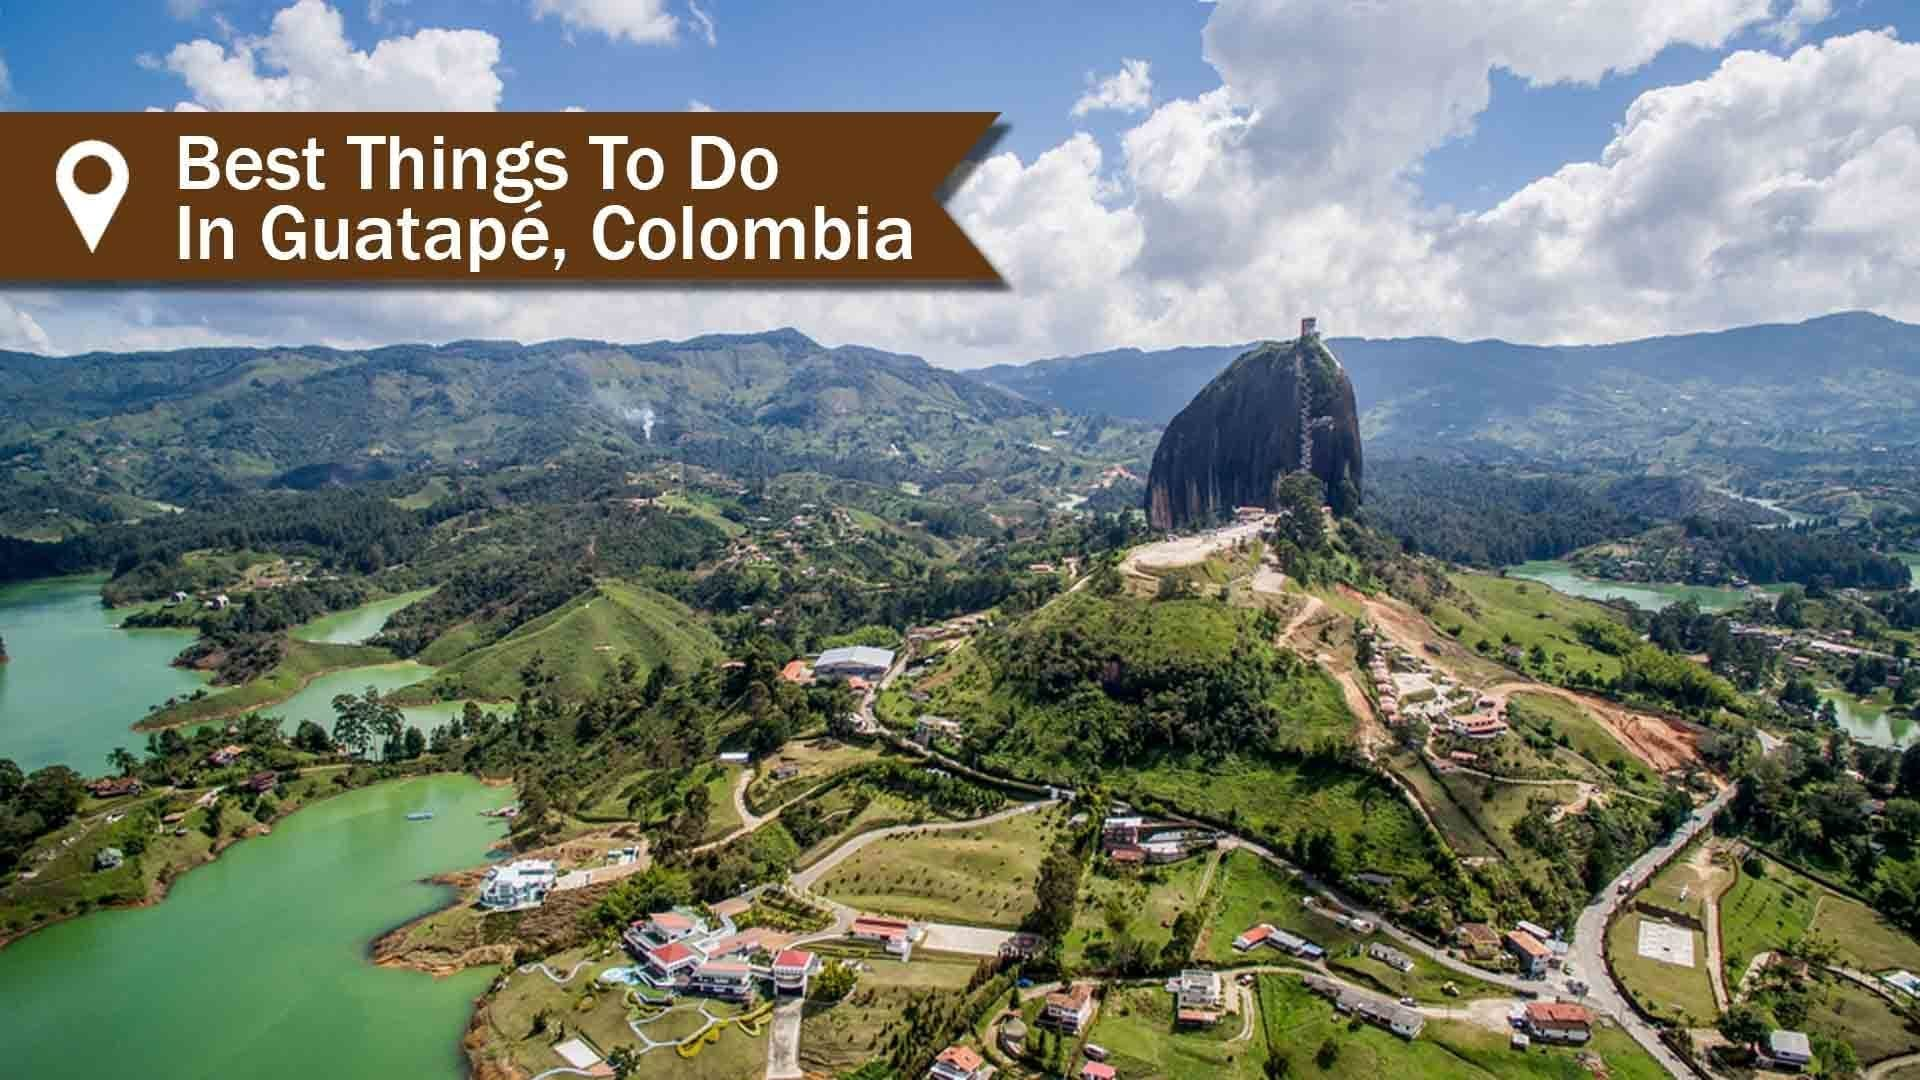 Best-Things-To-Do-In-Guatape.jpg